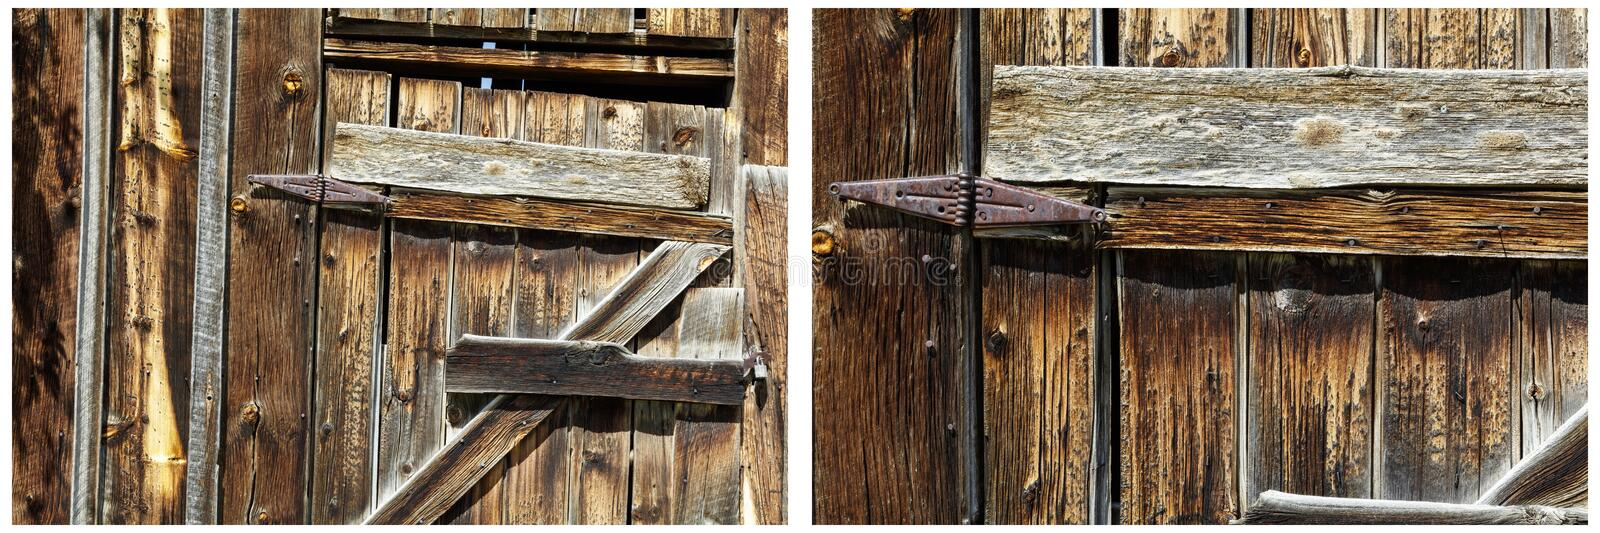 Old wooden shed door rusted hinges collage royalty free stock photo